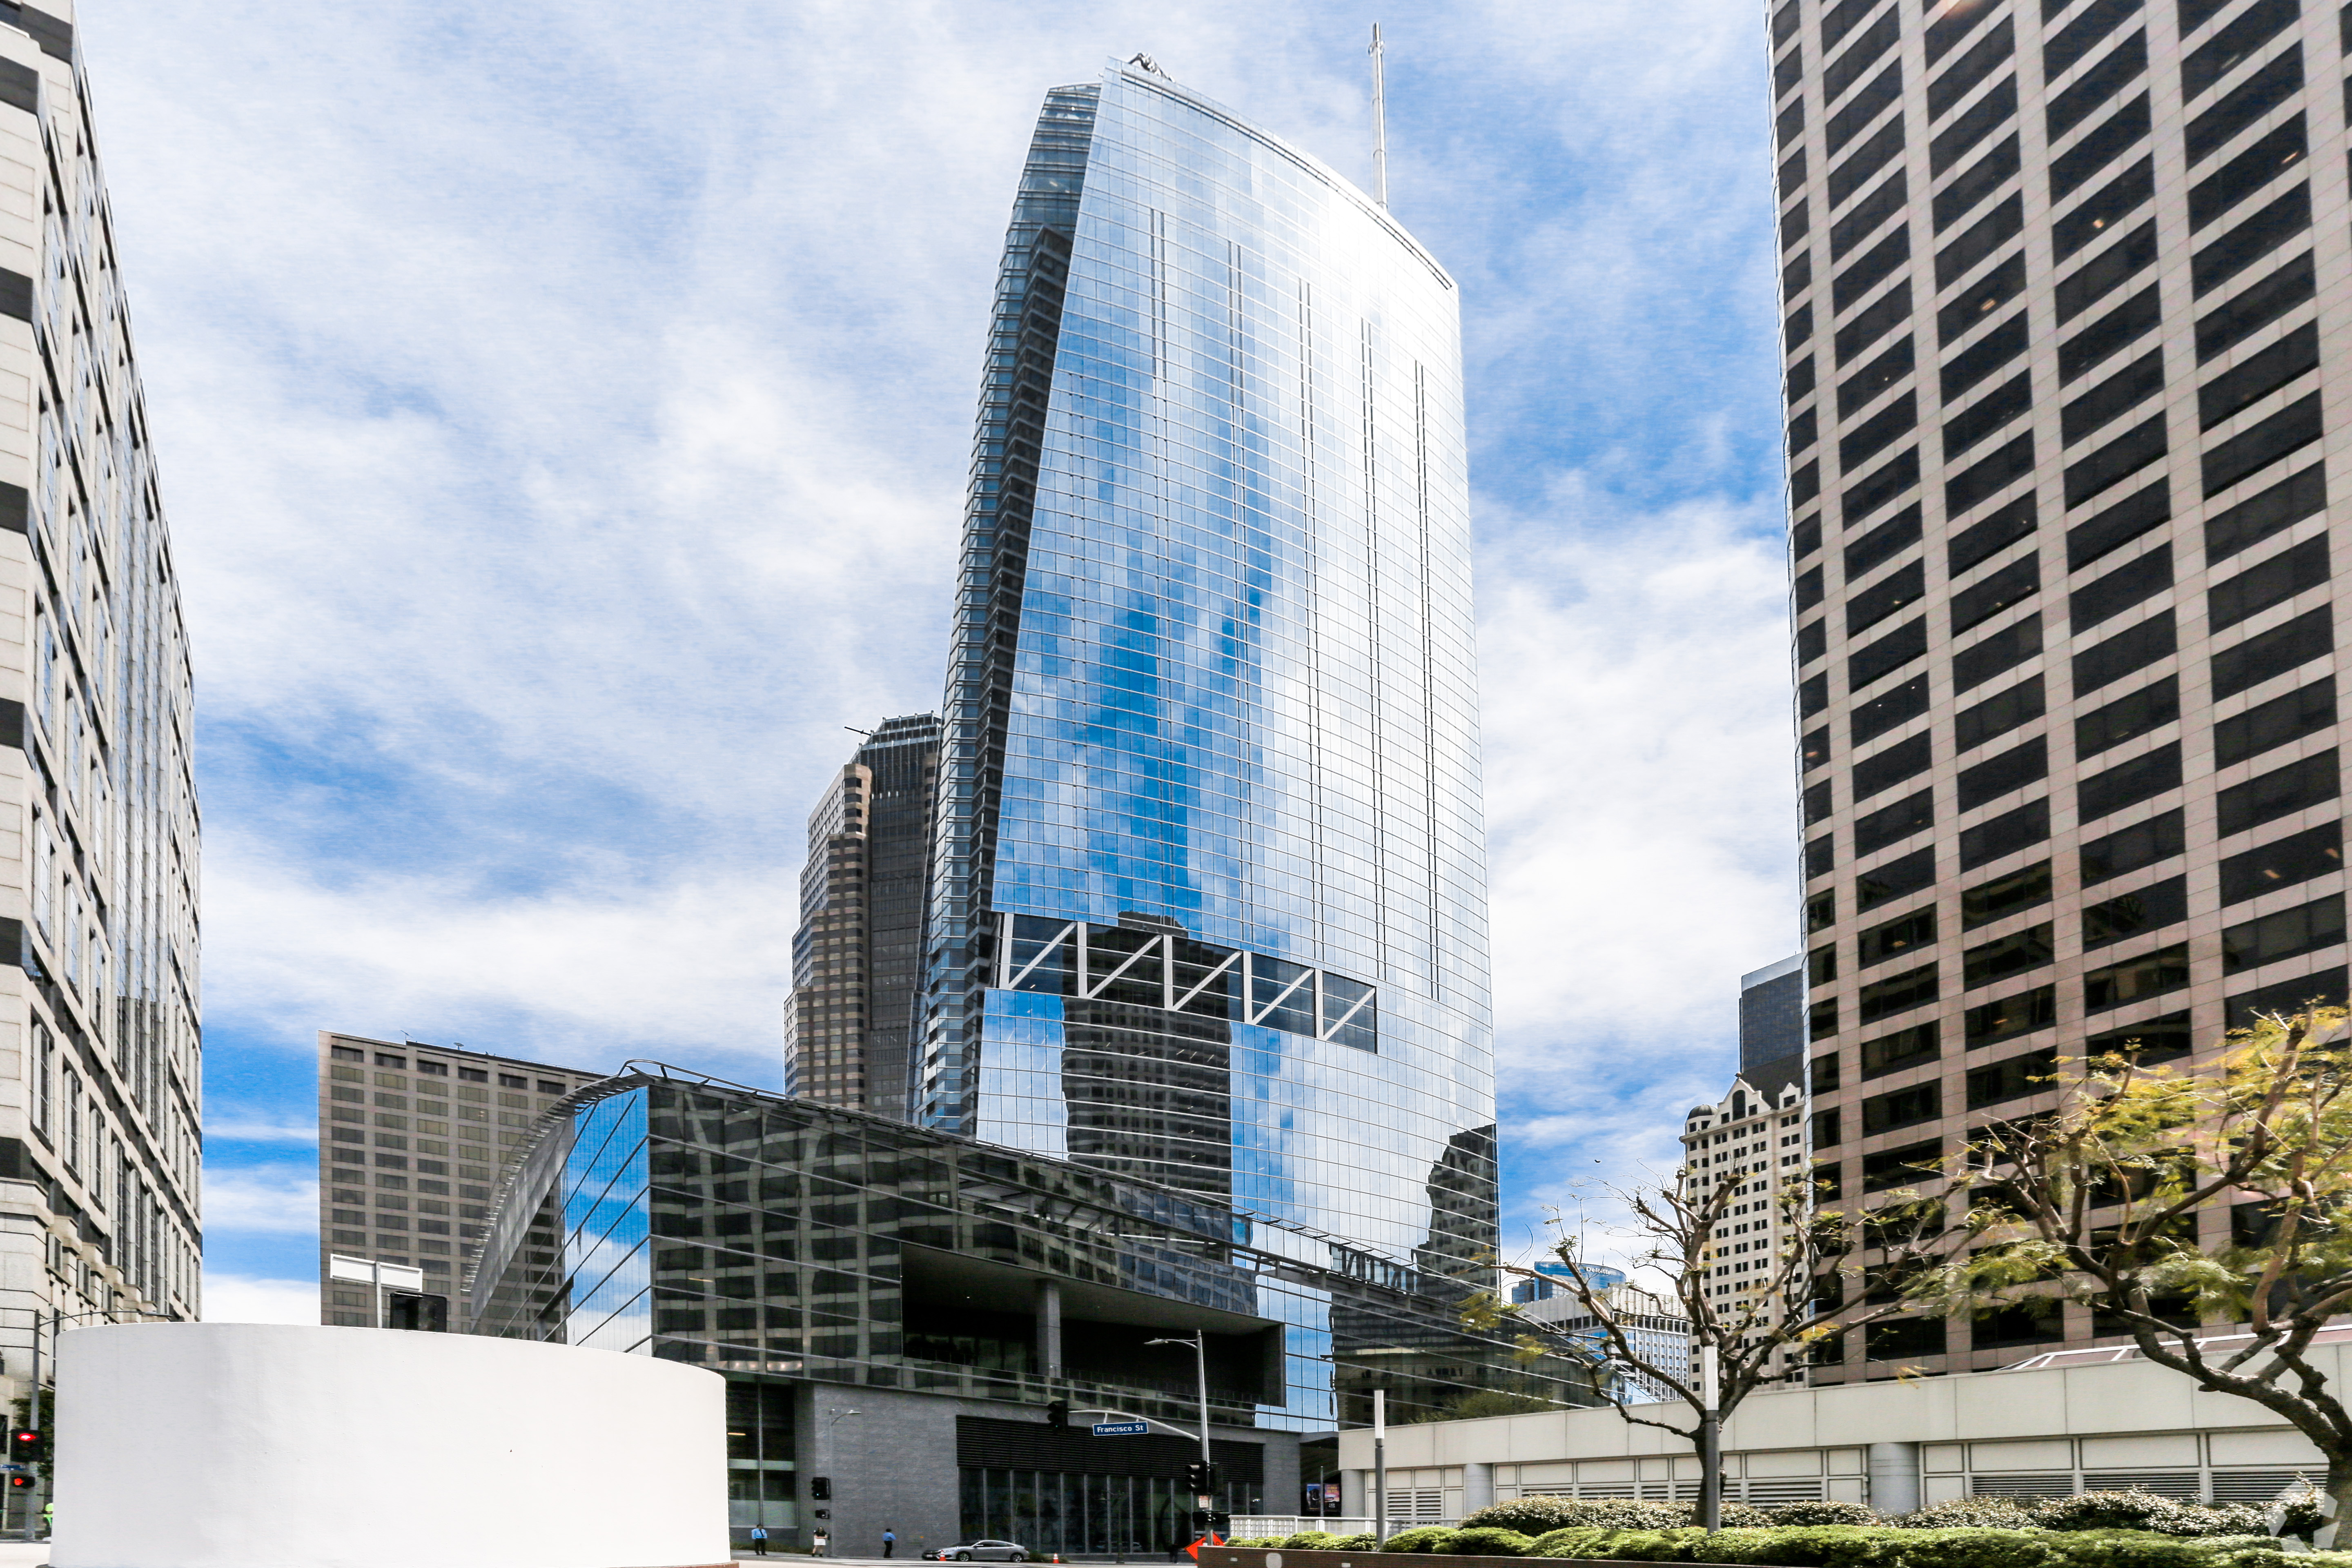 Korean Air Lines is lending $950 million to its Hanjin International Corp. subsidiary as part of a refinancing of Wilshire Grand Center, which houses commercial offices and an InterContinental hotel in downtown Los Angeles. (CoStar)